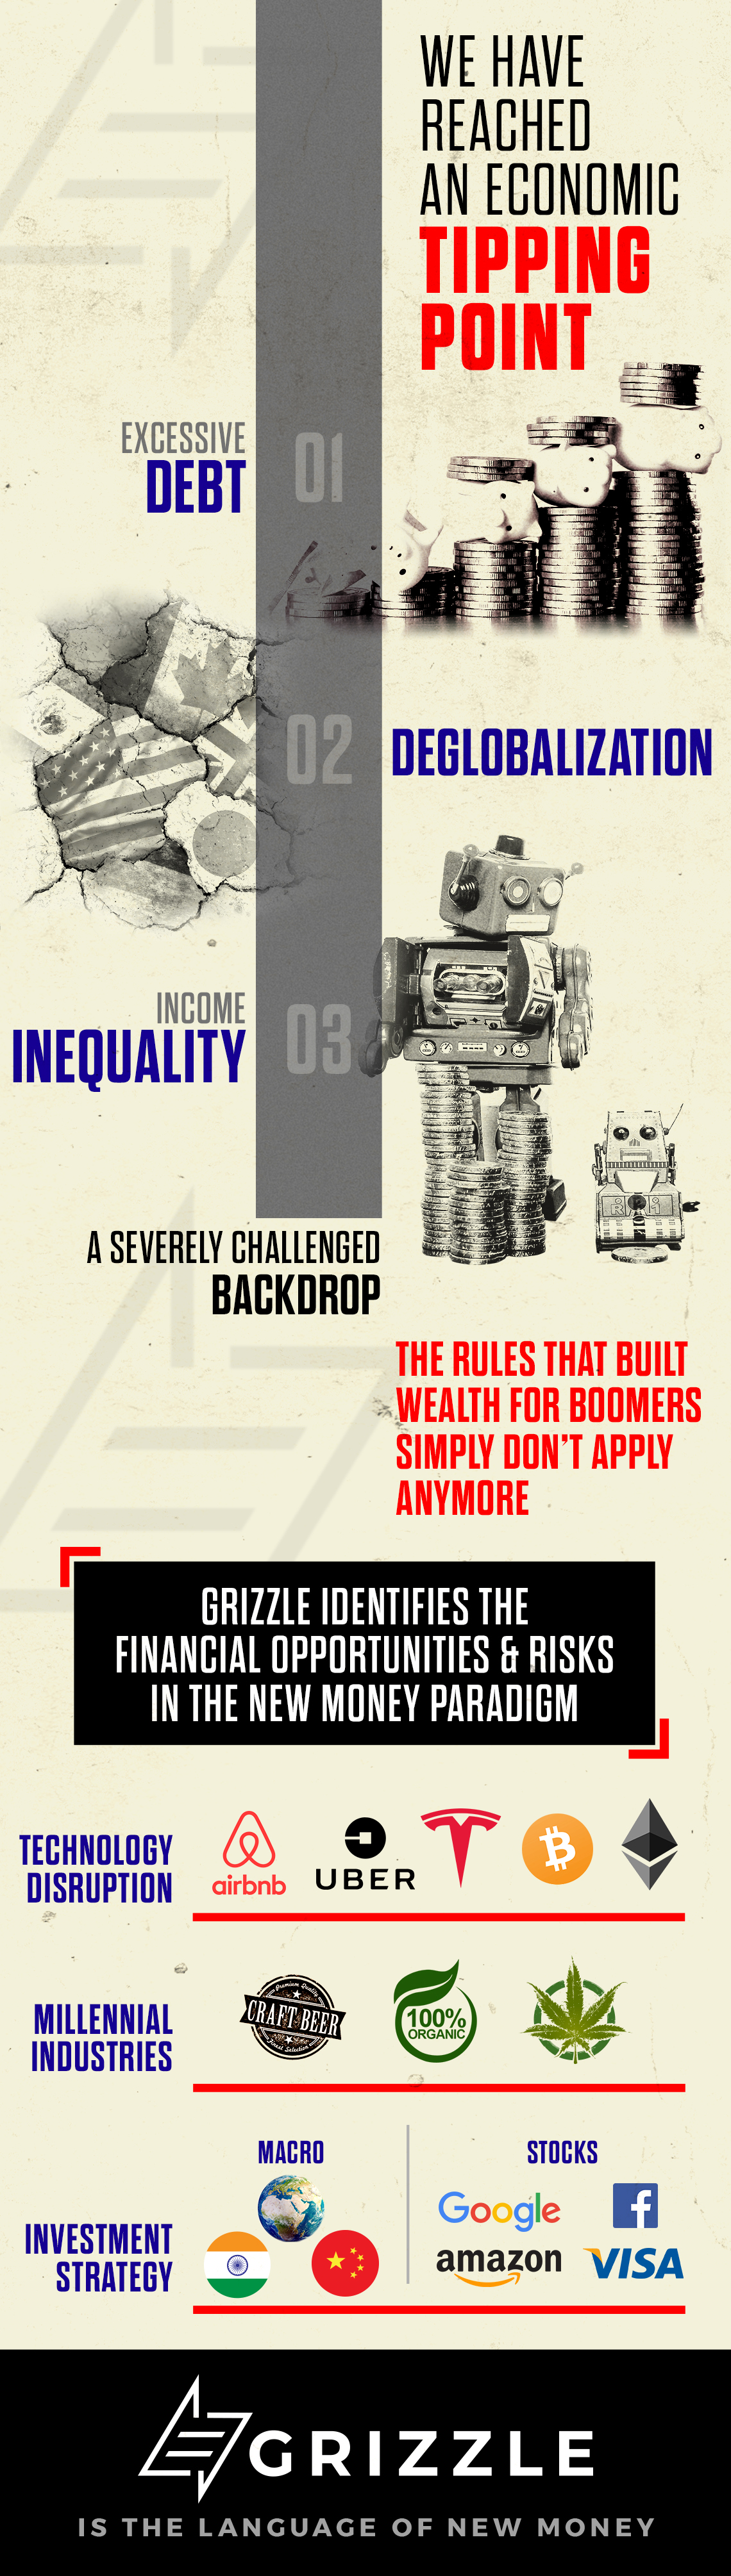 grizzle-economic-tipping-point-infographic-1140px